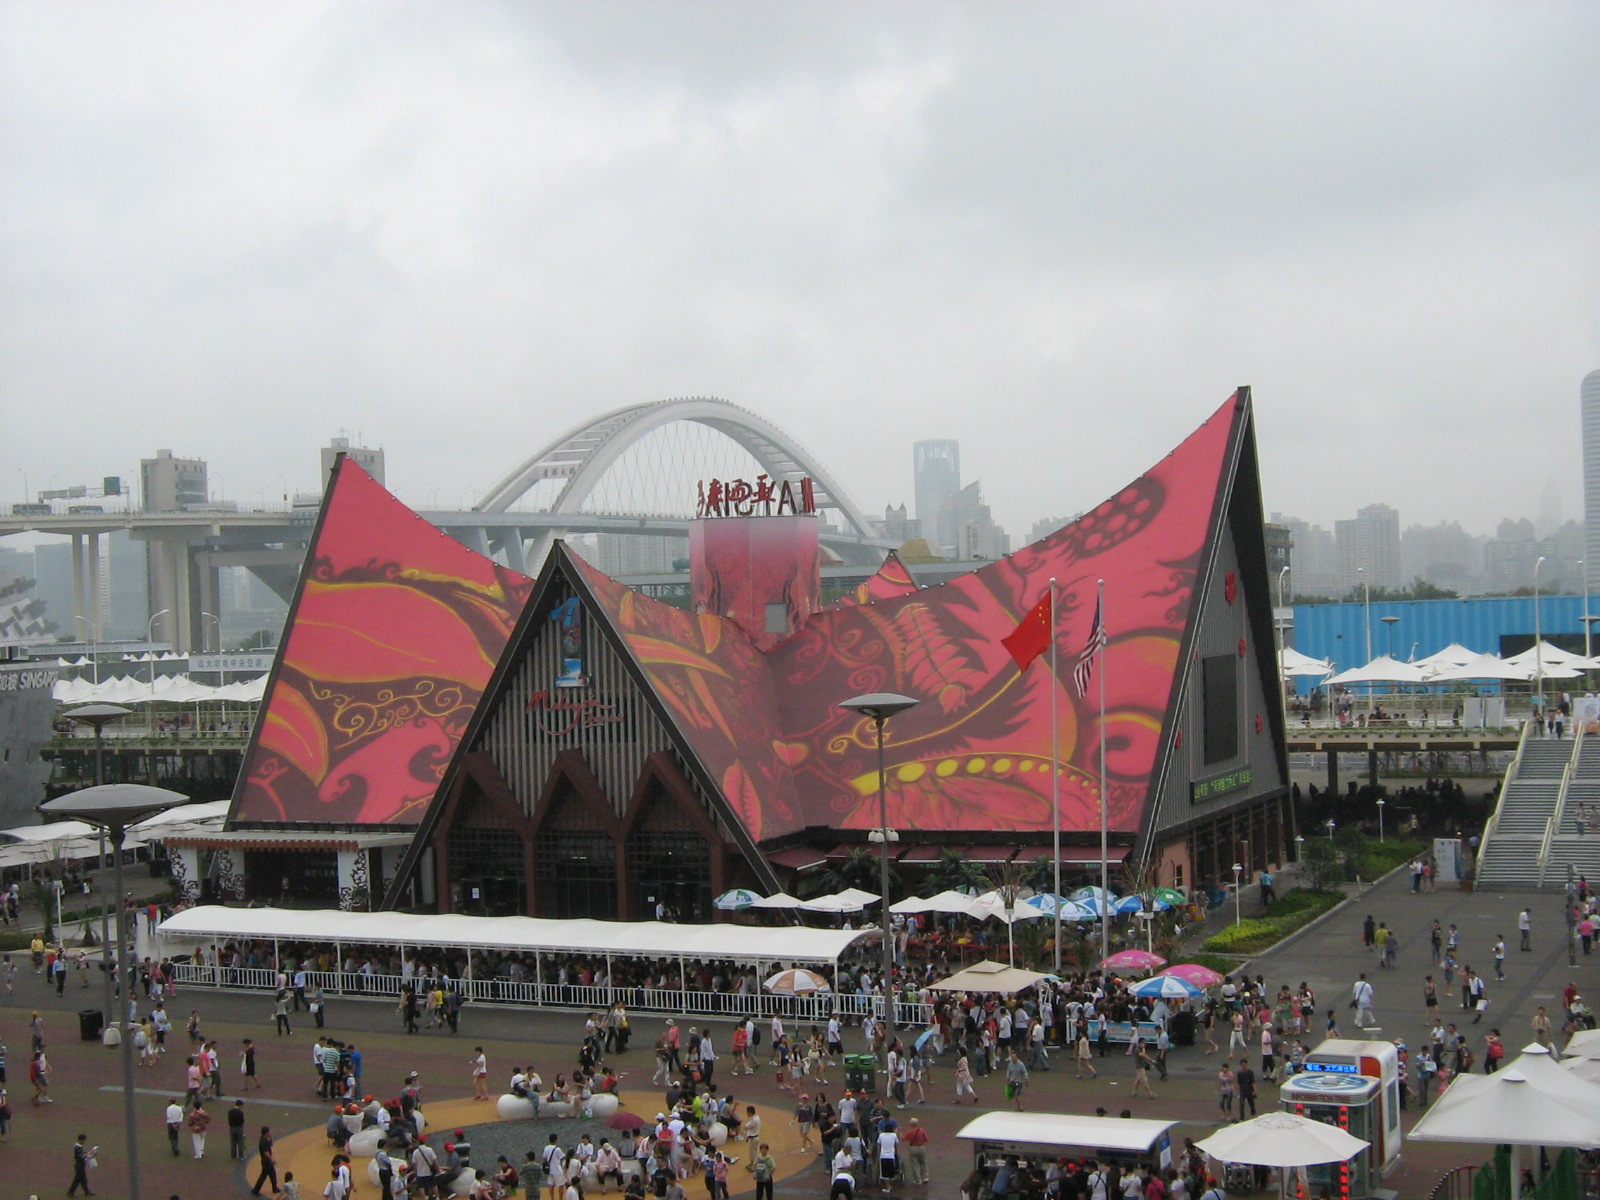 File:Malaysia Pavillion at 2010 Shanghai Expo.jpg - Wikimedia Commons